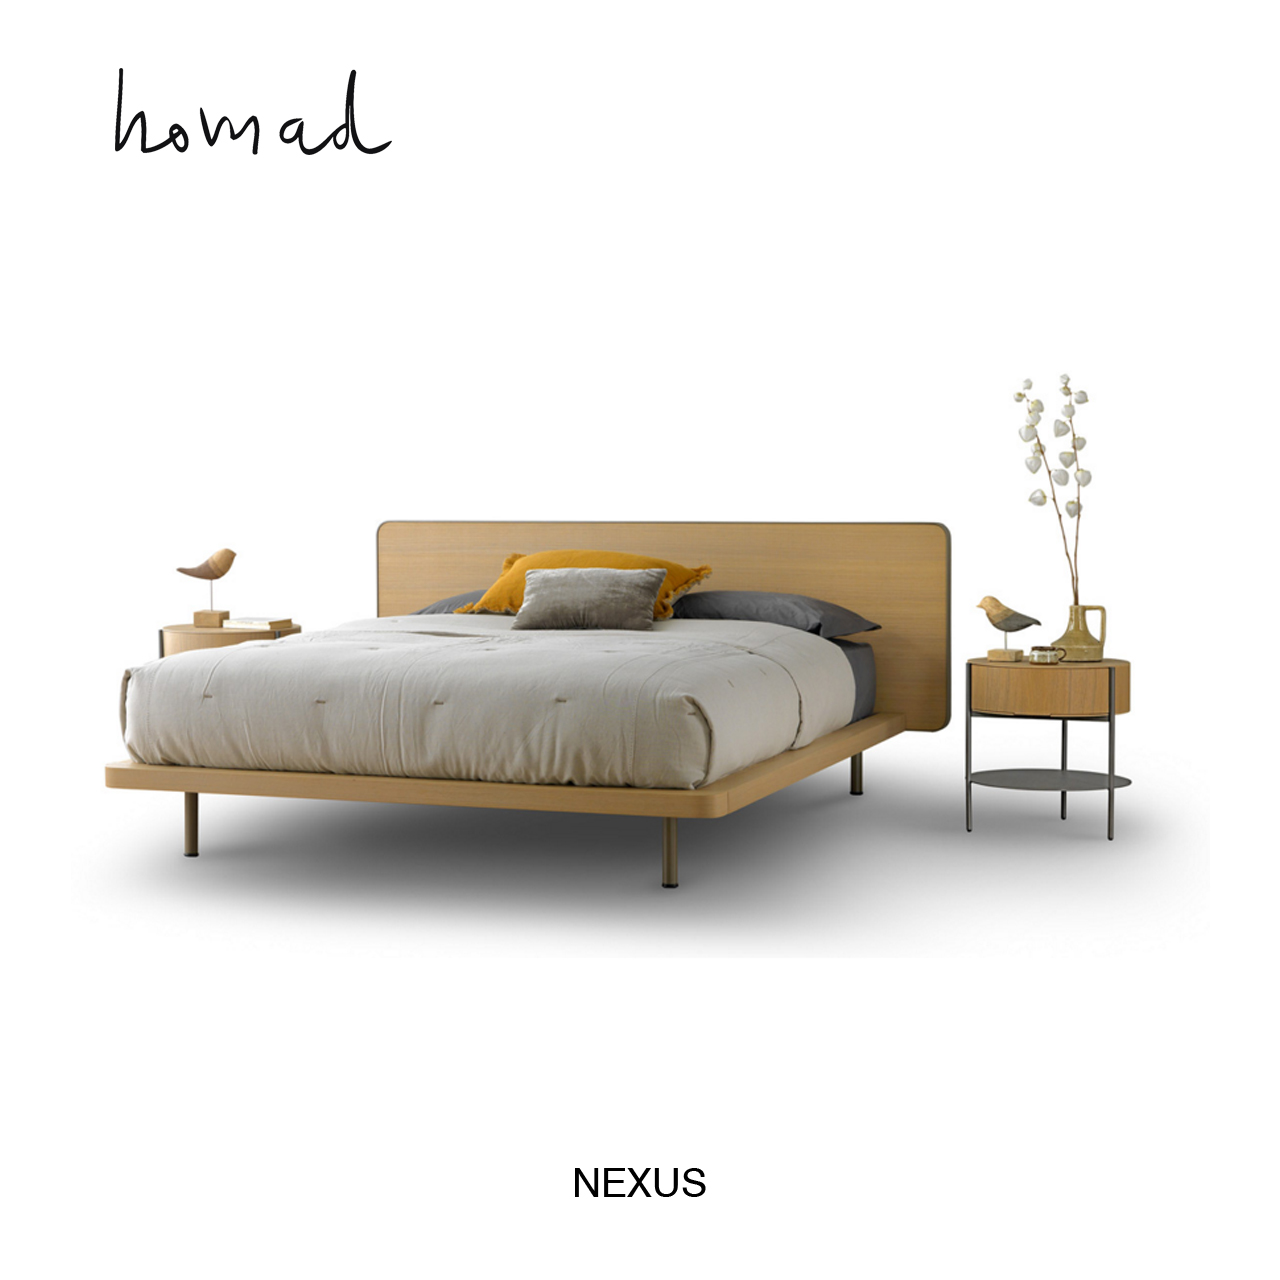 nexus bed homad